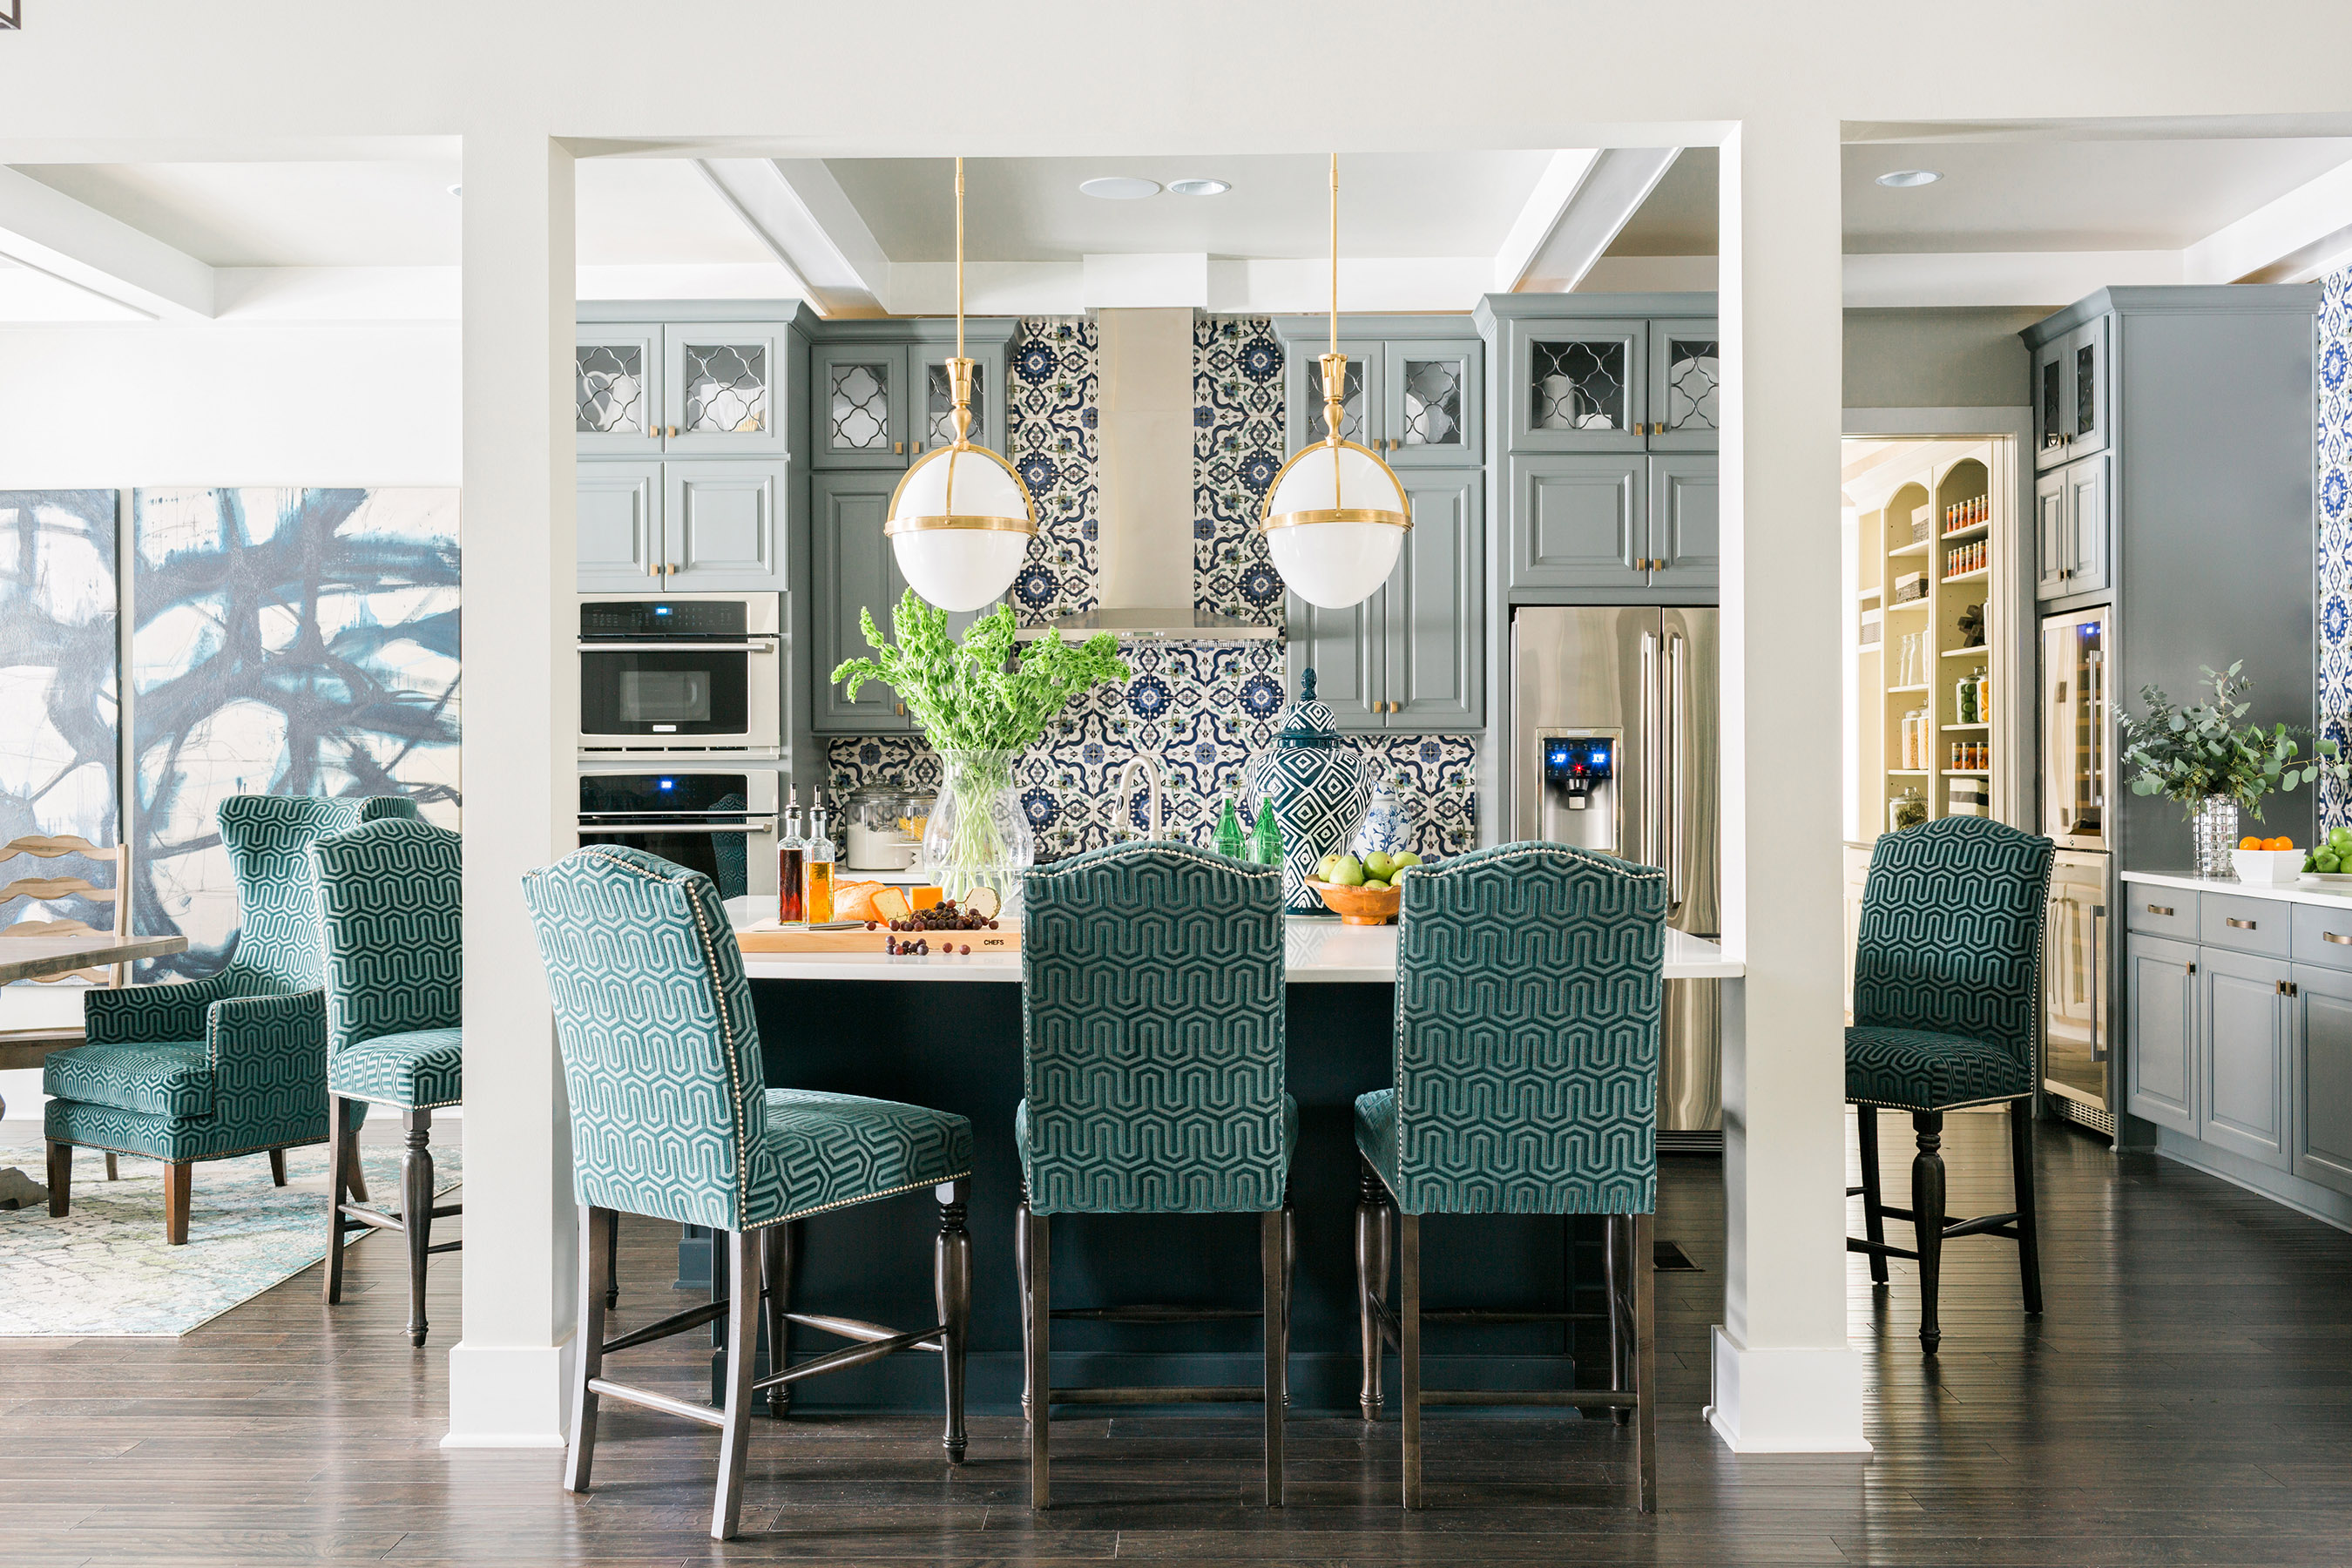 Hgtv launches virtual tour of hgtv smart home 2016 for Hgtv kitchens